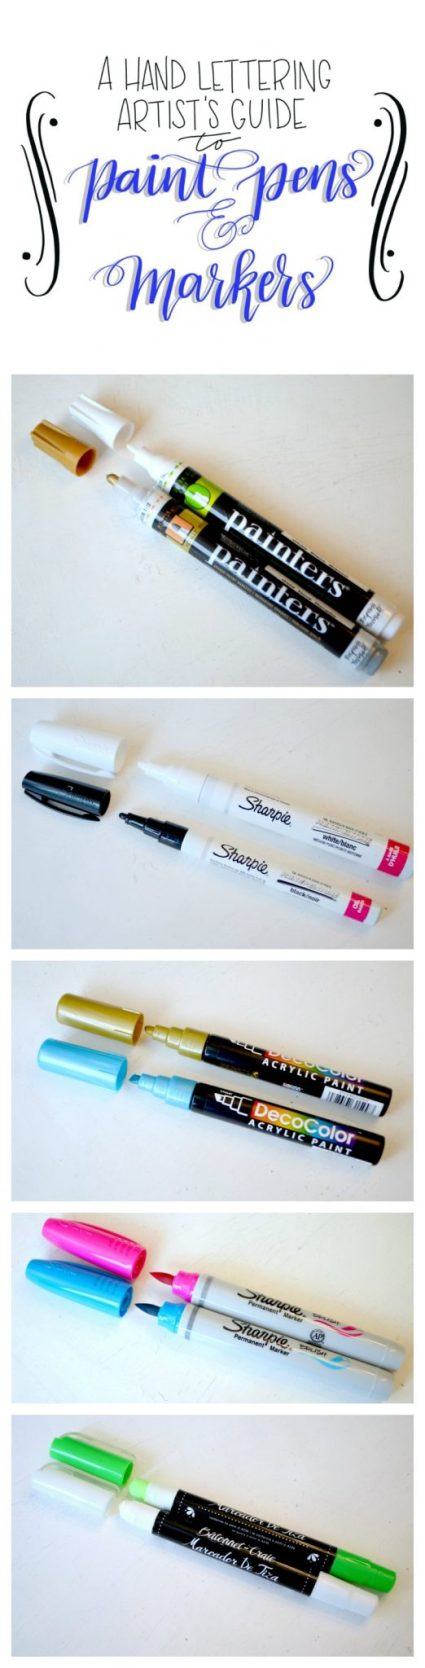 A Hand Lettering Artist's Guide to Paint Pens & Markers